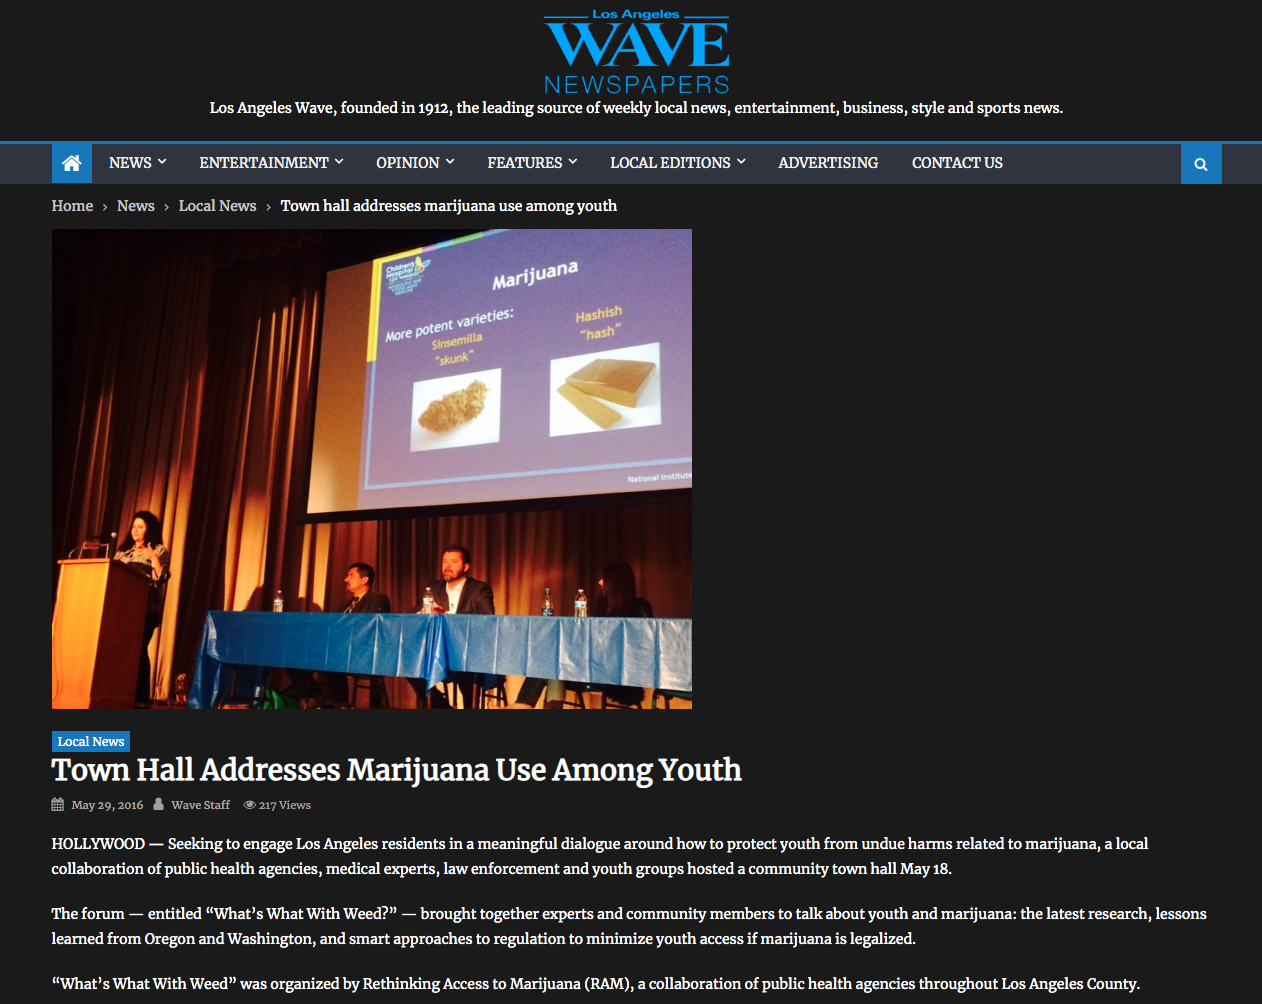 LA Wave Article: Town Hall Addresses Marijuana Use Among Youth